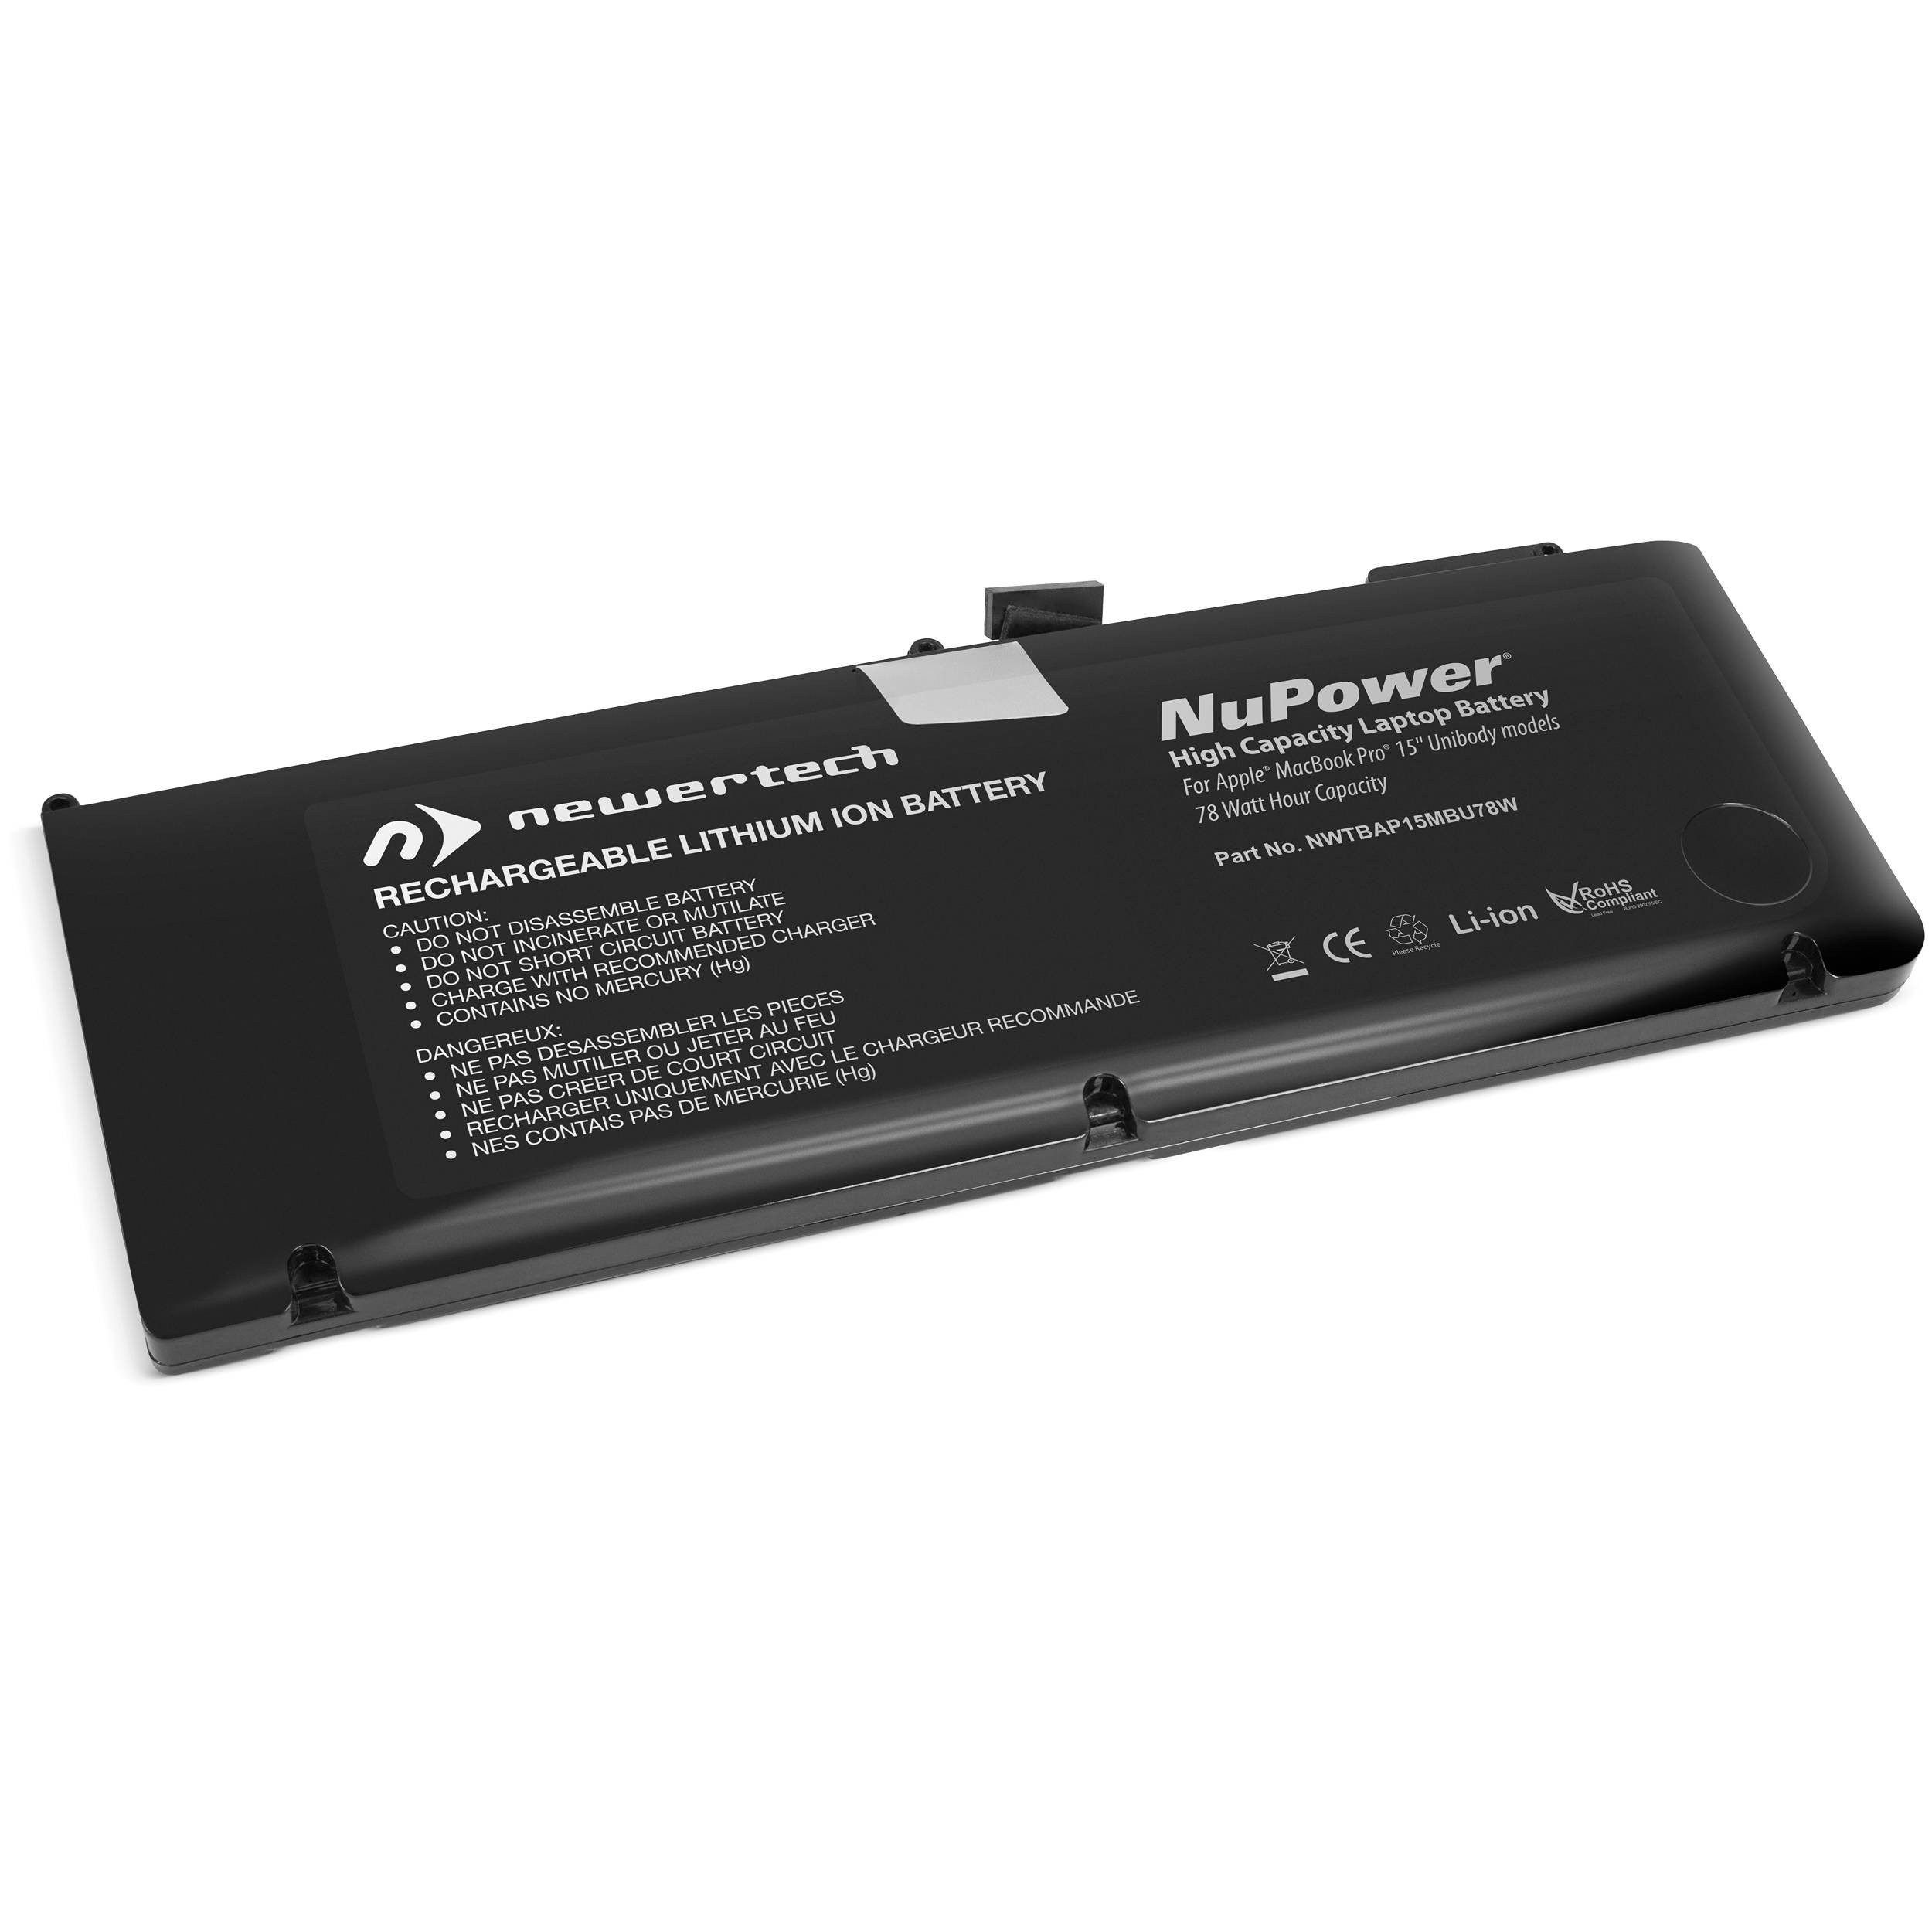 NewerTech NuPower 78 Watt-Hour Battery for MacBook Pro 15-inch Unibody Early and Late 2011, Mid-2012 Models, NWTBAP15MBU78W